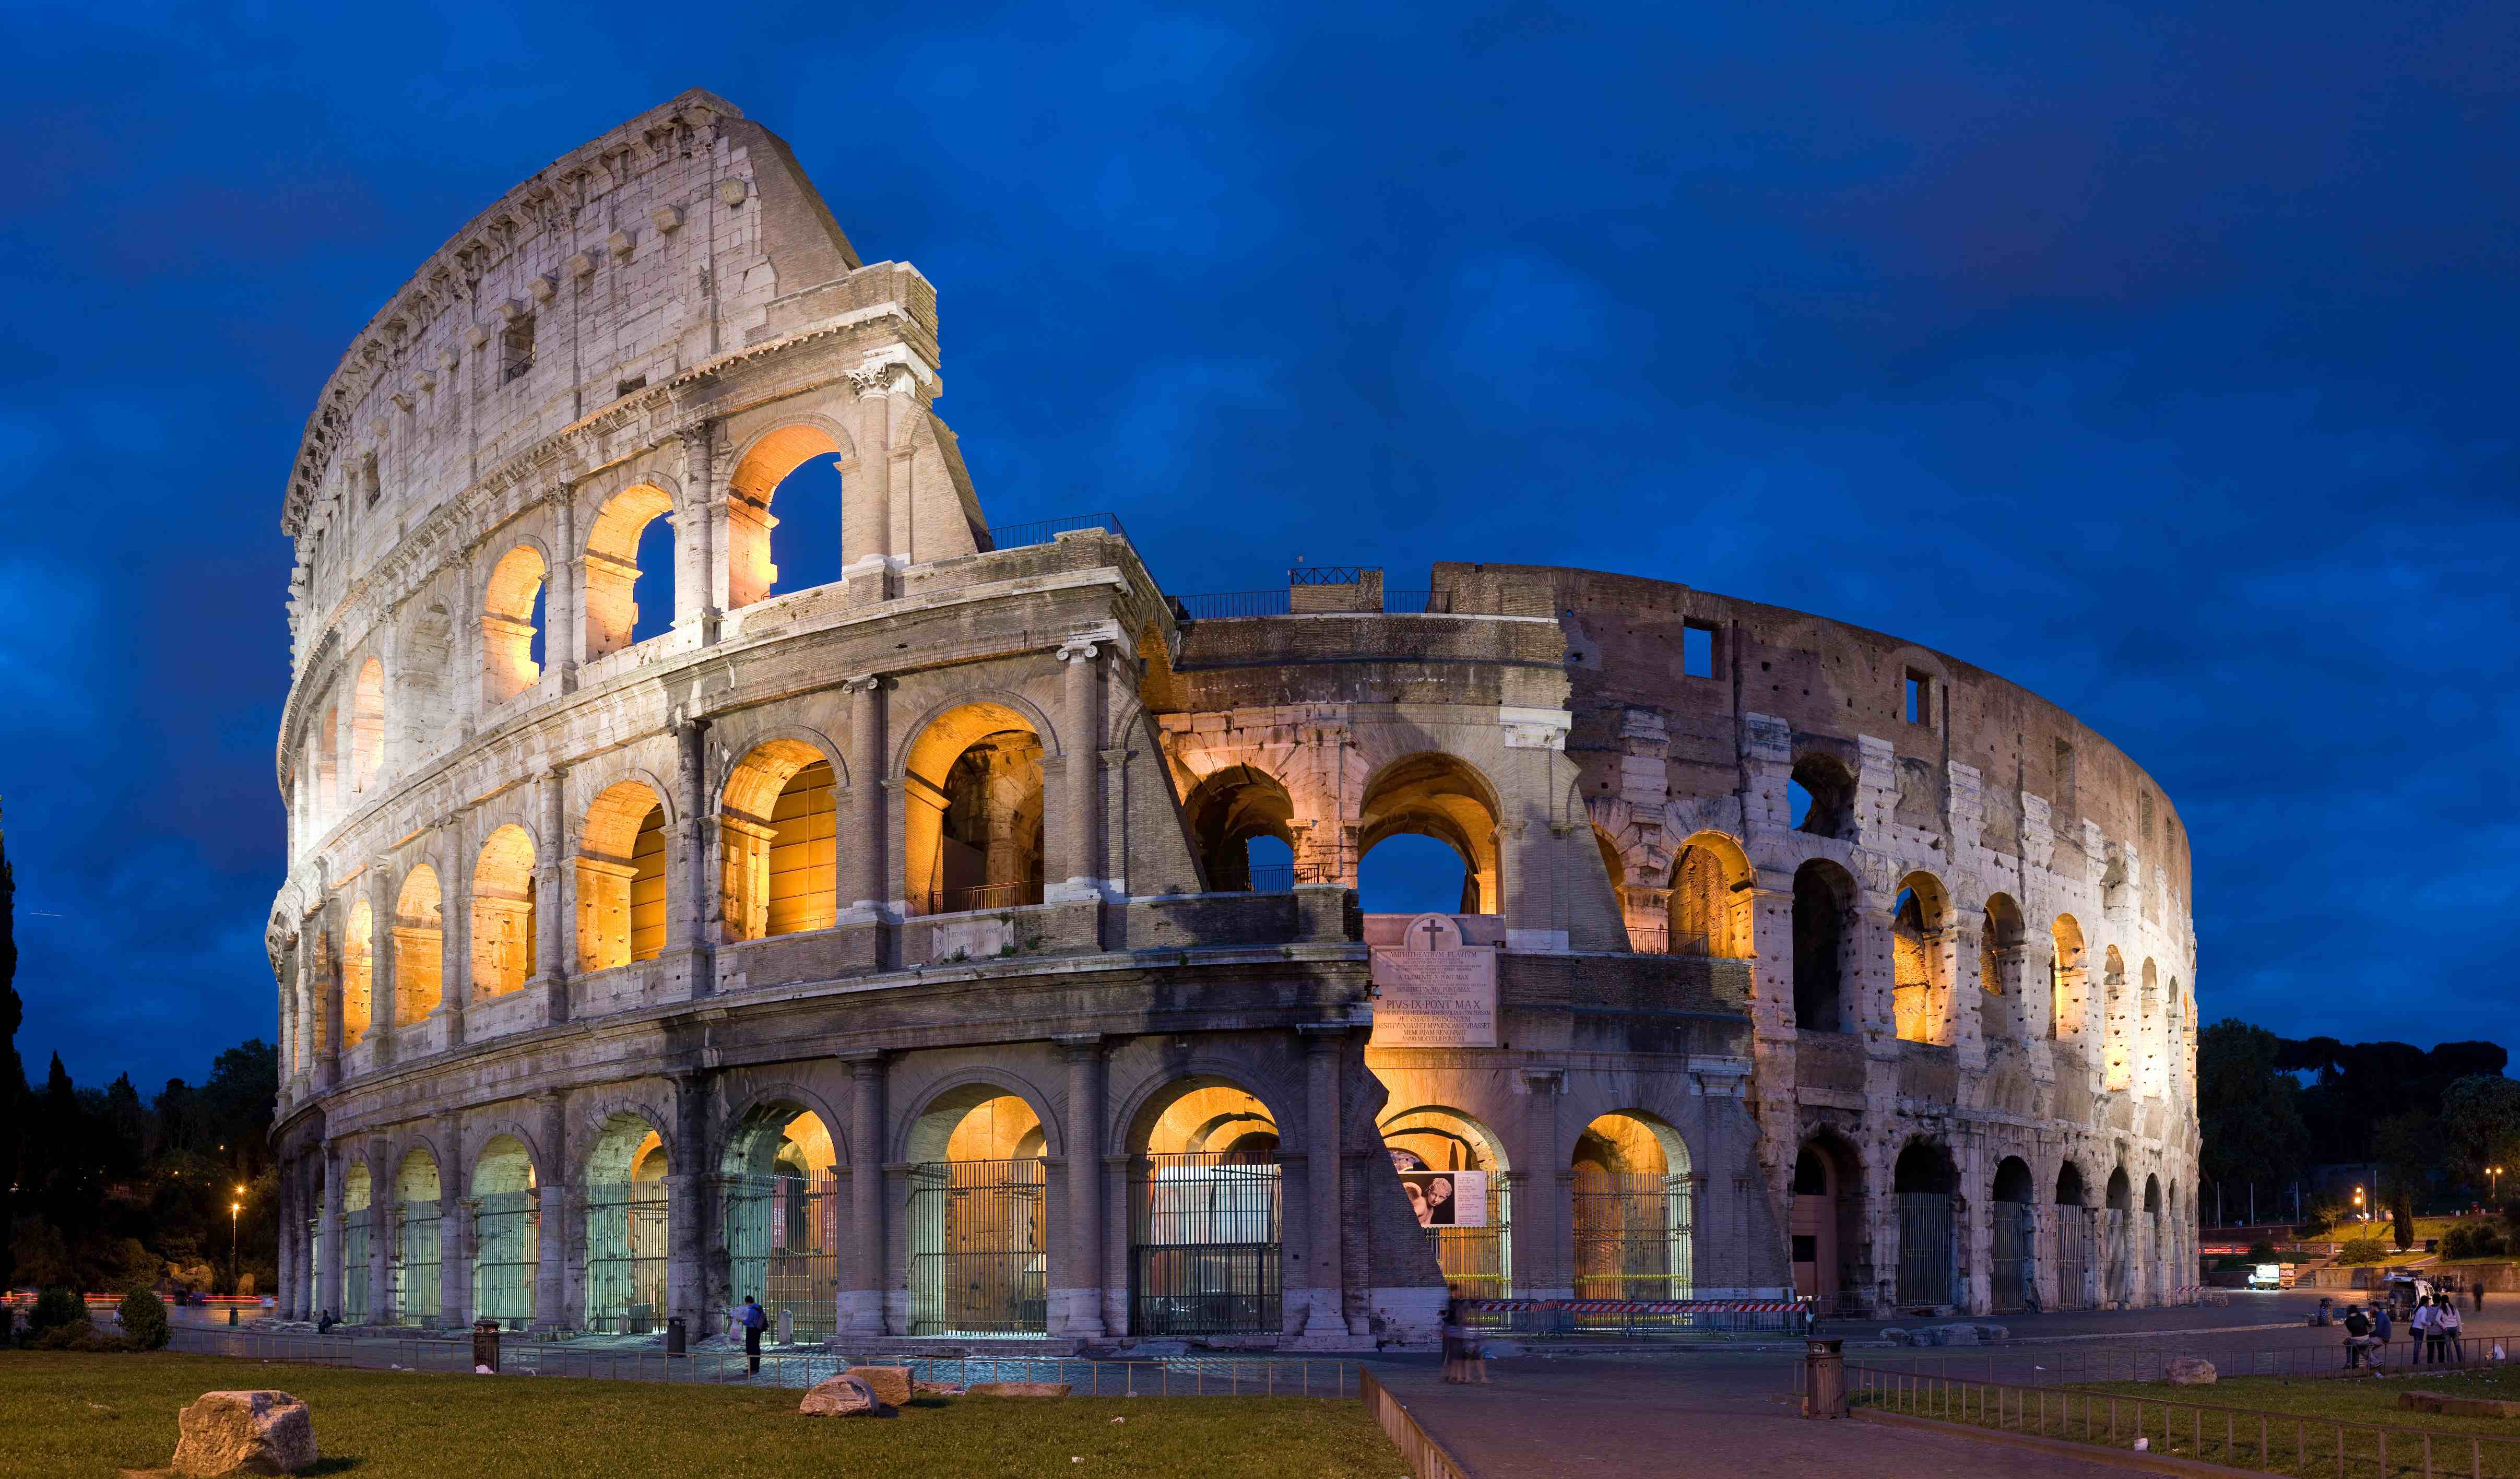 Colosseum Rome Italy copy